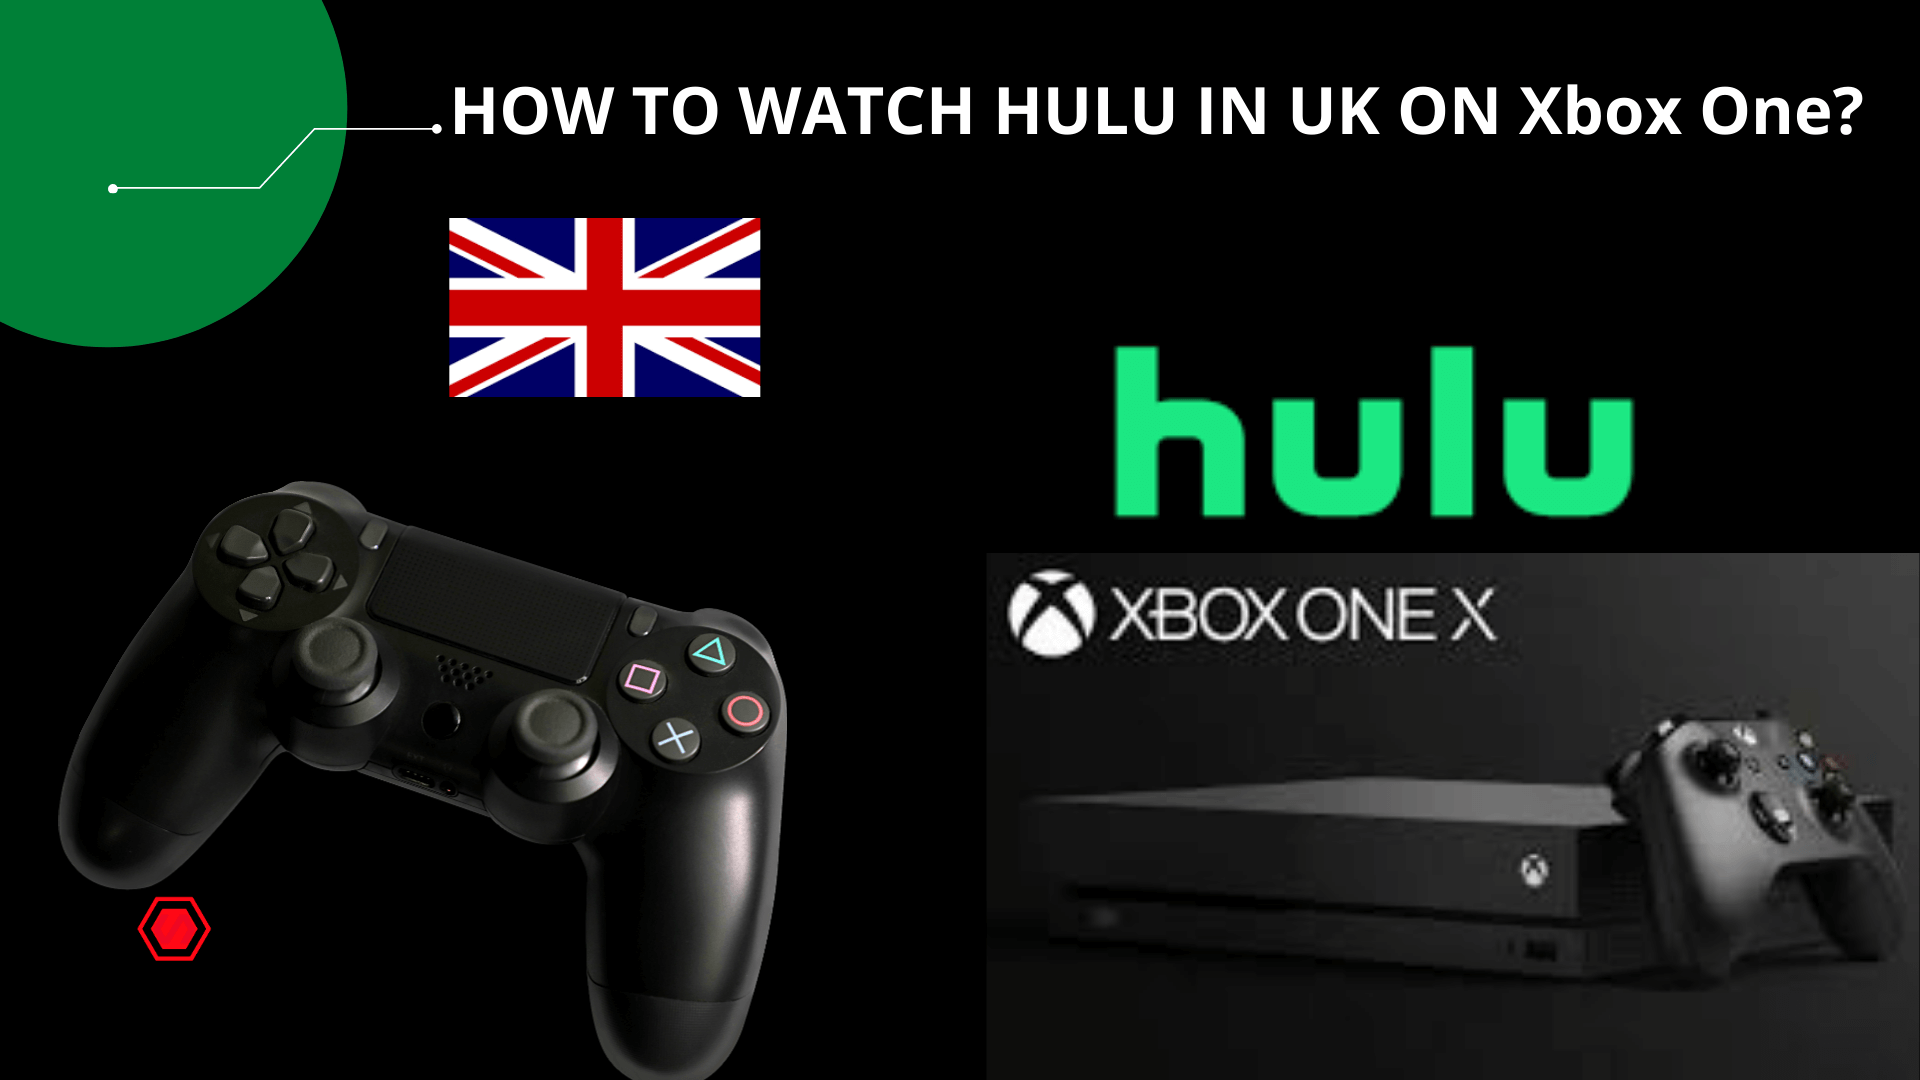 How to Watch Hulu in UK on XBox One